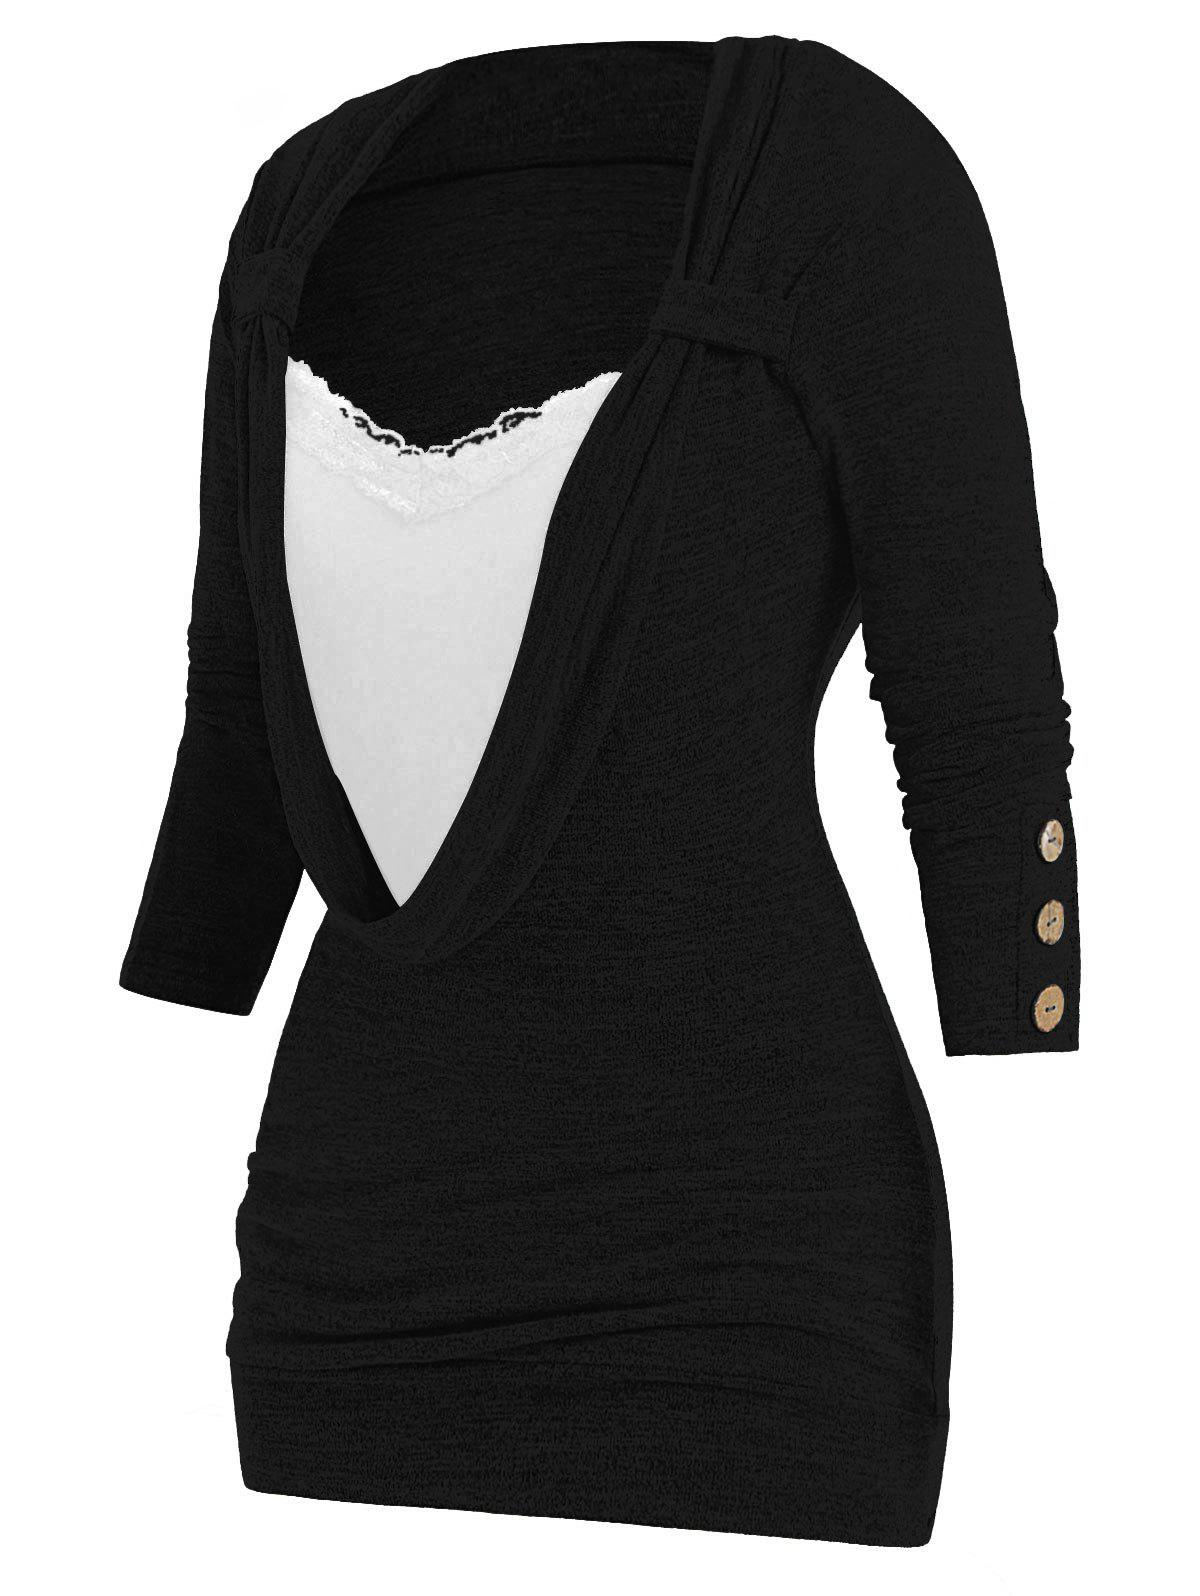 Plus Size Lace Panel Button Embellished Heathered Faux Twinset T-shirt - BLACK L